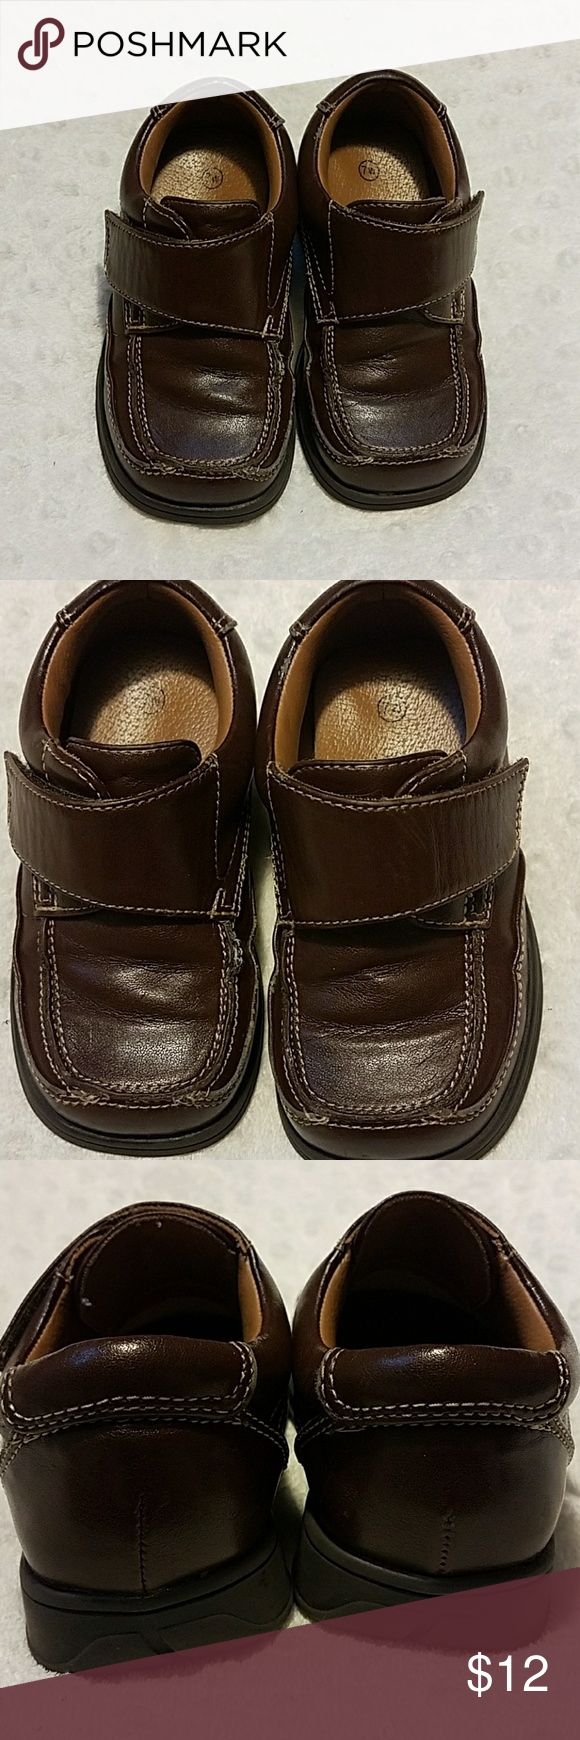 Smart Fit Boy Toddler Brown Dress shoes size 7 W Smart Fit Boy Toddler Brown Dress shoes  size 7 W Brand: smart fit  Color: brown This SmartFit dress style shoes features a roomy square toe, convenient adjustable strap closure, jersey lining, padded footbed, and skid-resistant outsole  Gently used, shows wear in front of shoes. Please see all pictures listed SmartFit Shoes Dress Shoes